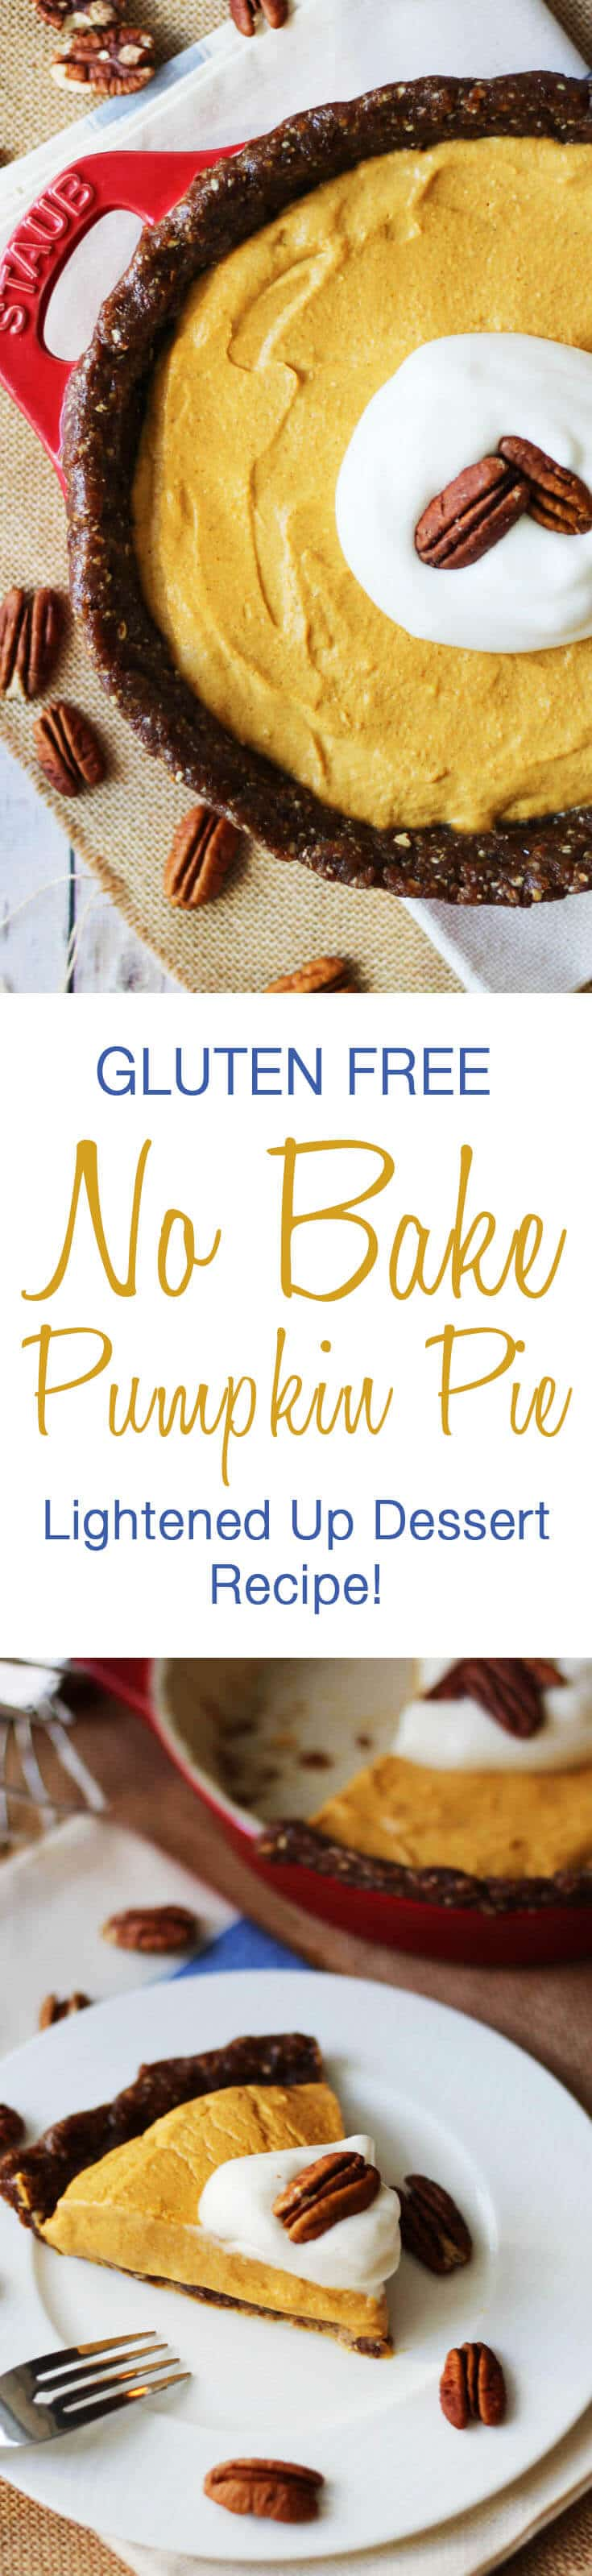 This Gluten Free No Bake Pumpkin Pie is a lightened up version of everyone's favourite Thanksgiving dessert recipe!